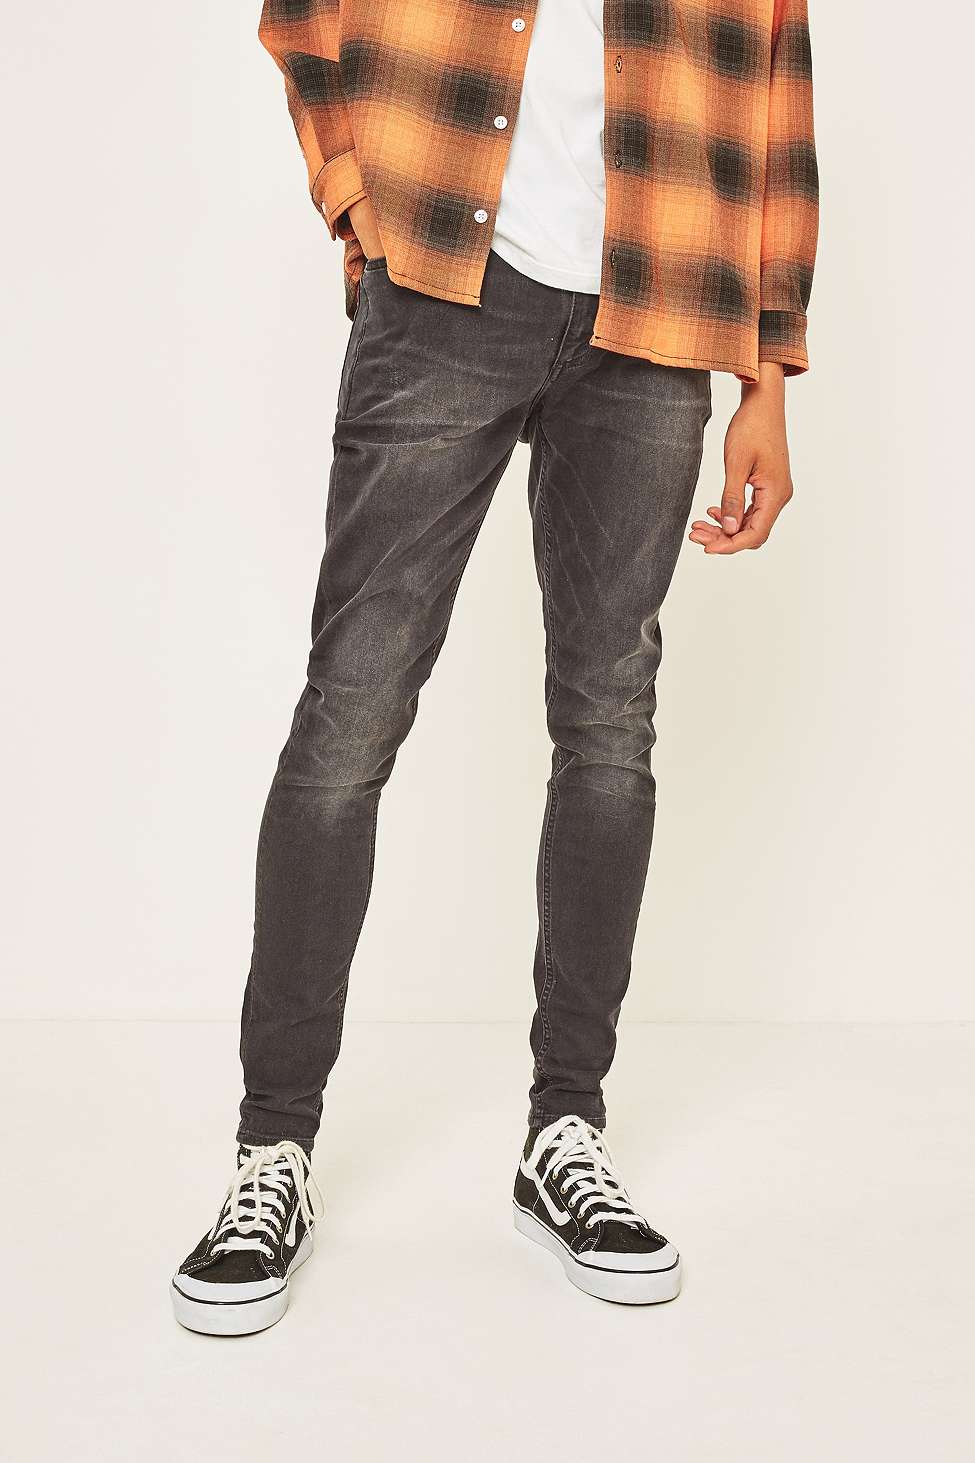 Cheap Monday Him Spray Pistol Black Skinny Jeans | Urban Outfitters